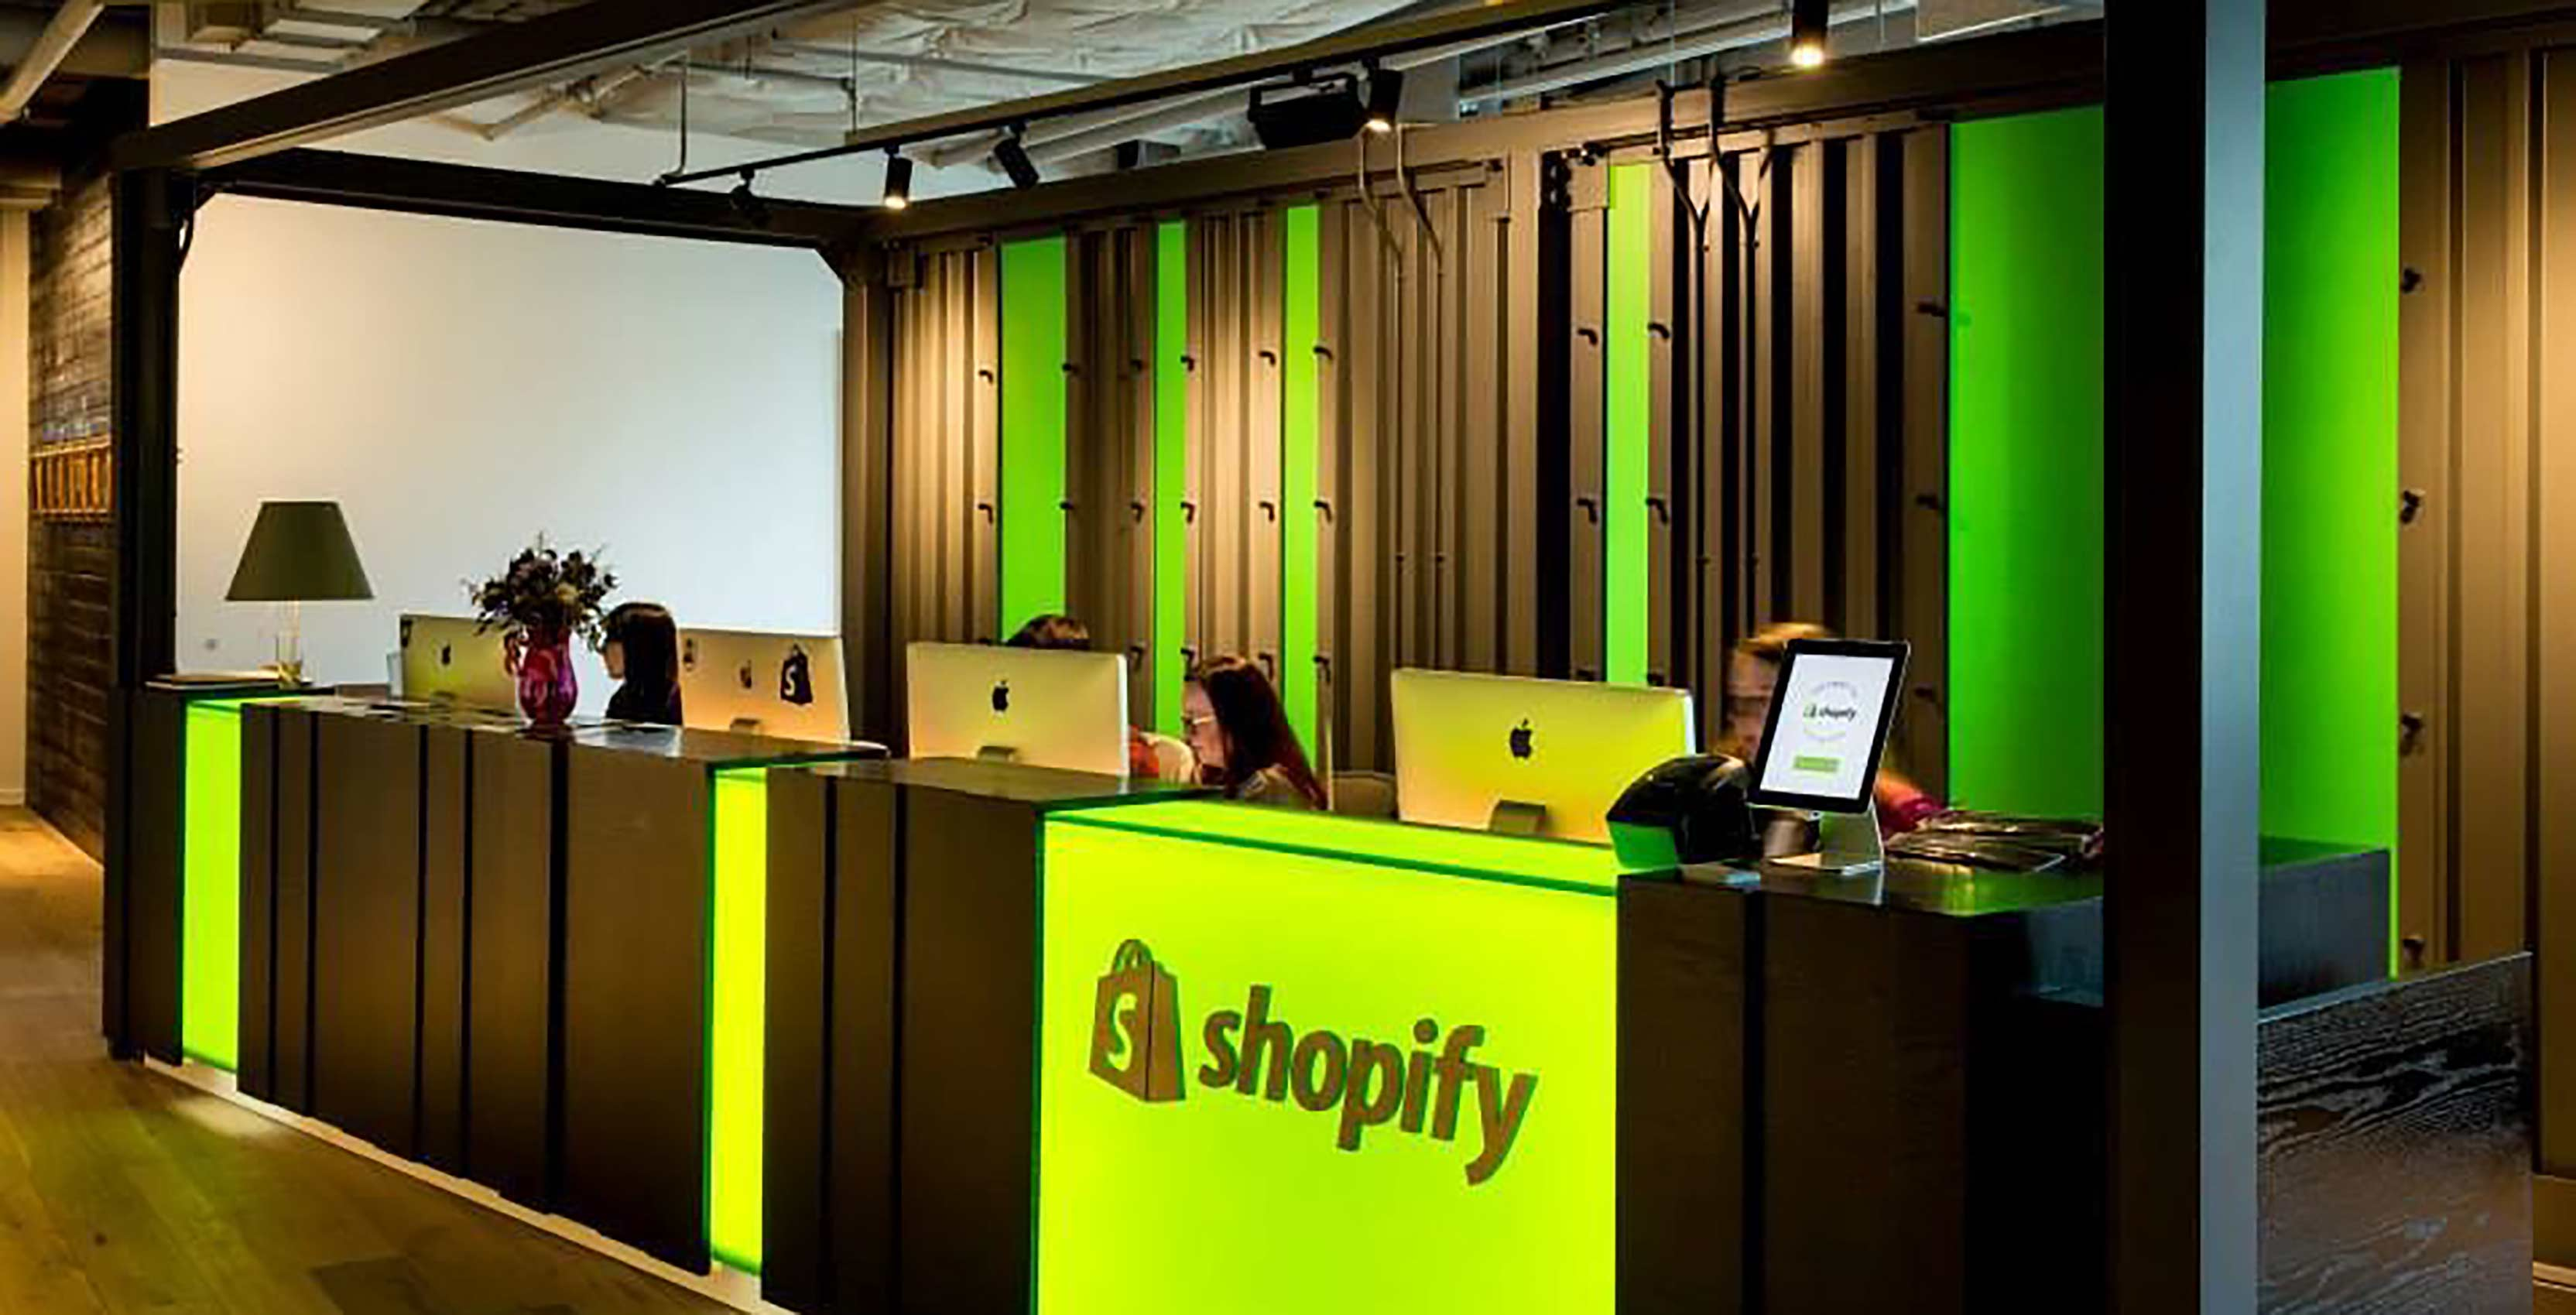 Black Friday 2018 Statistics Data From Across Shopify Shopify Sharing Live Black Friday And Cyber Monday Data